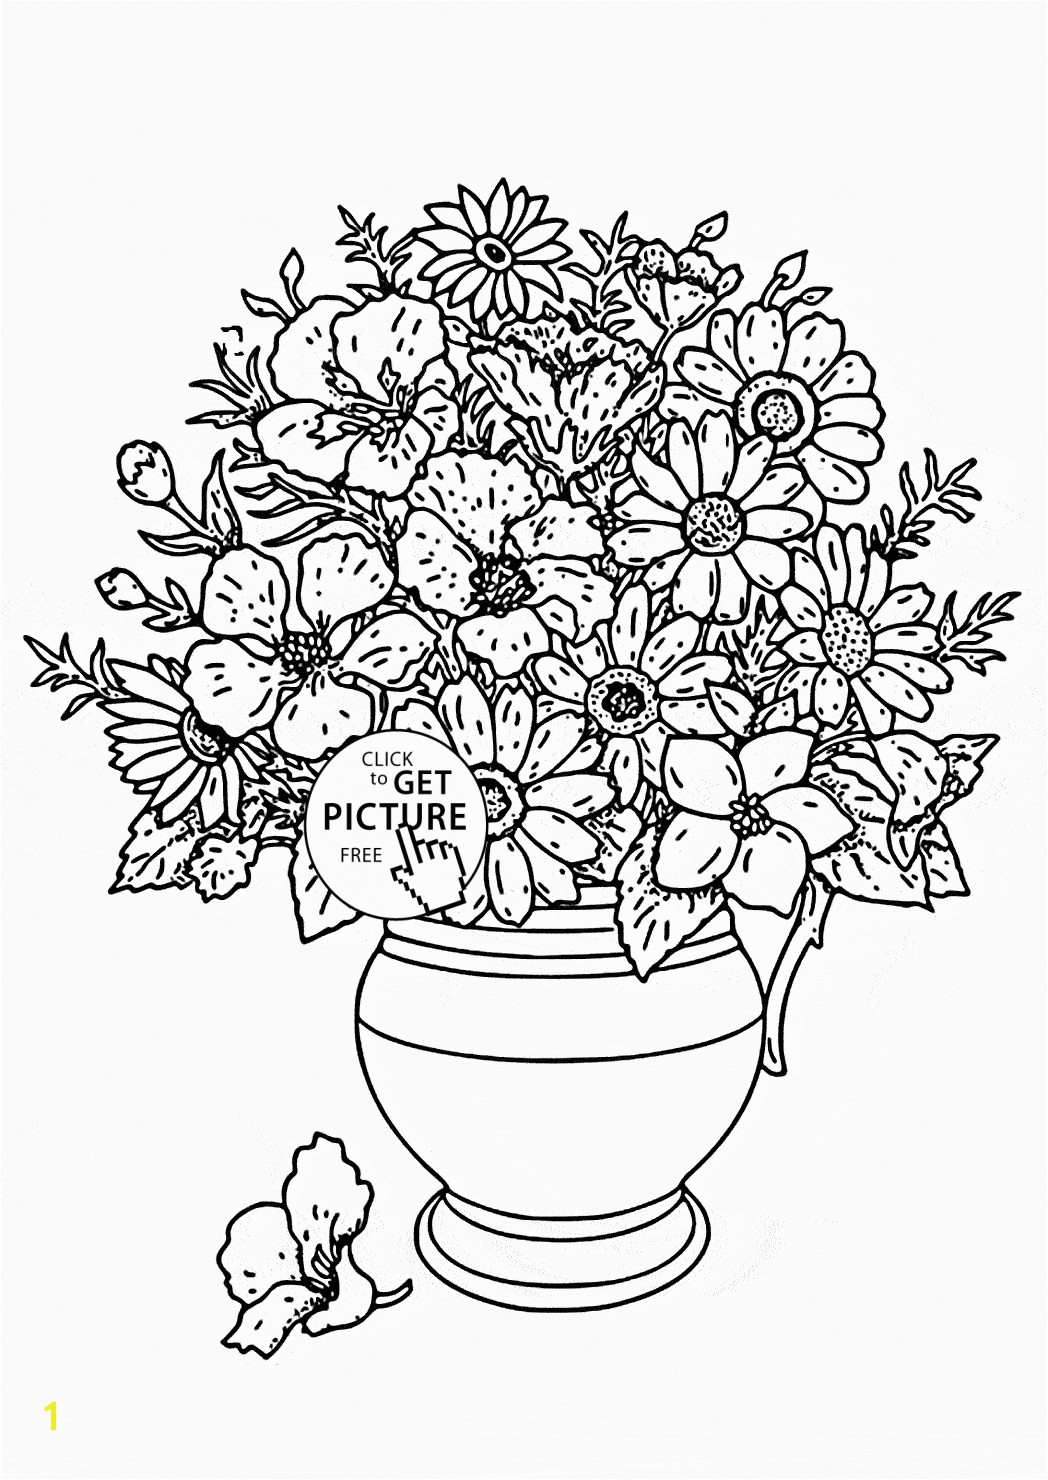 Realistic Bouquet of flowers in vase coloring page for kids flower coloring pages printables free Wuppsy